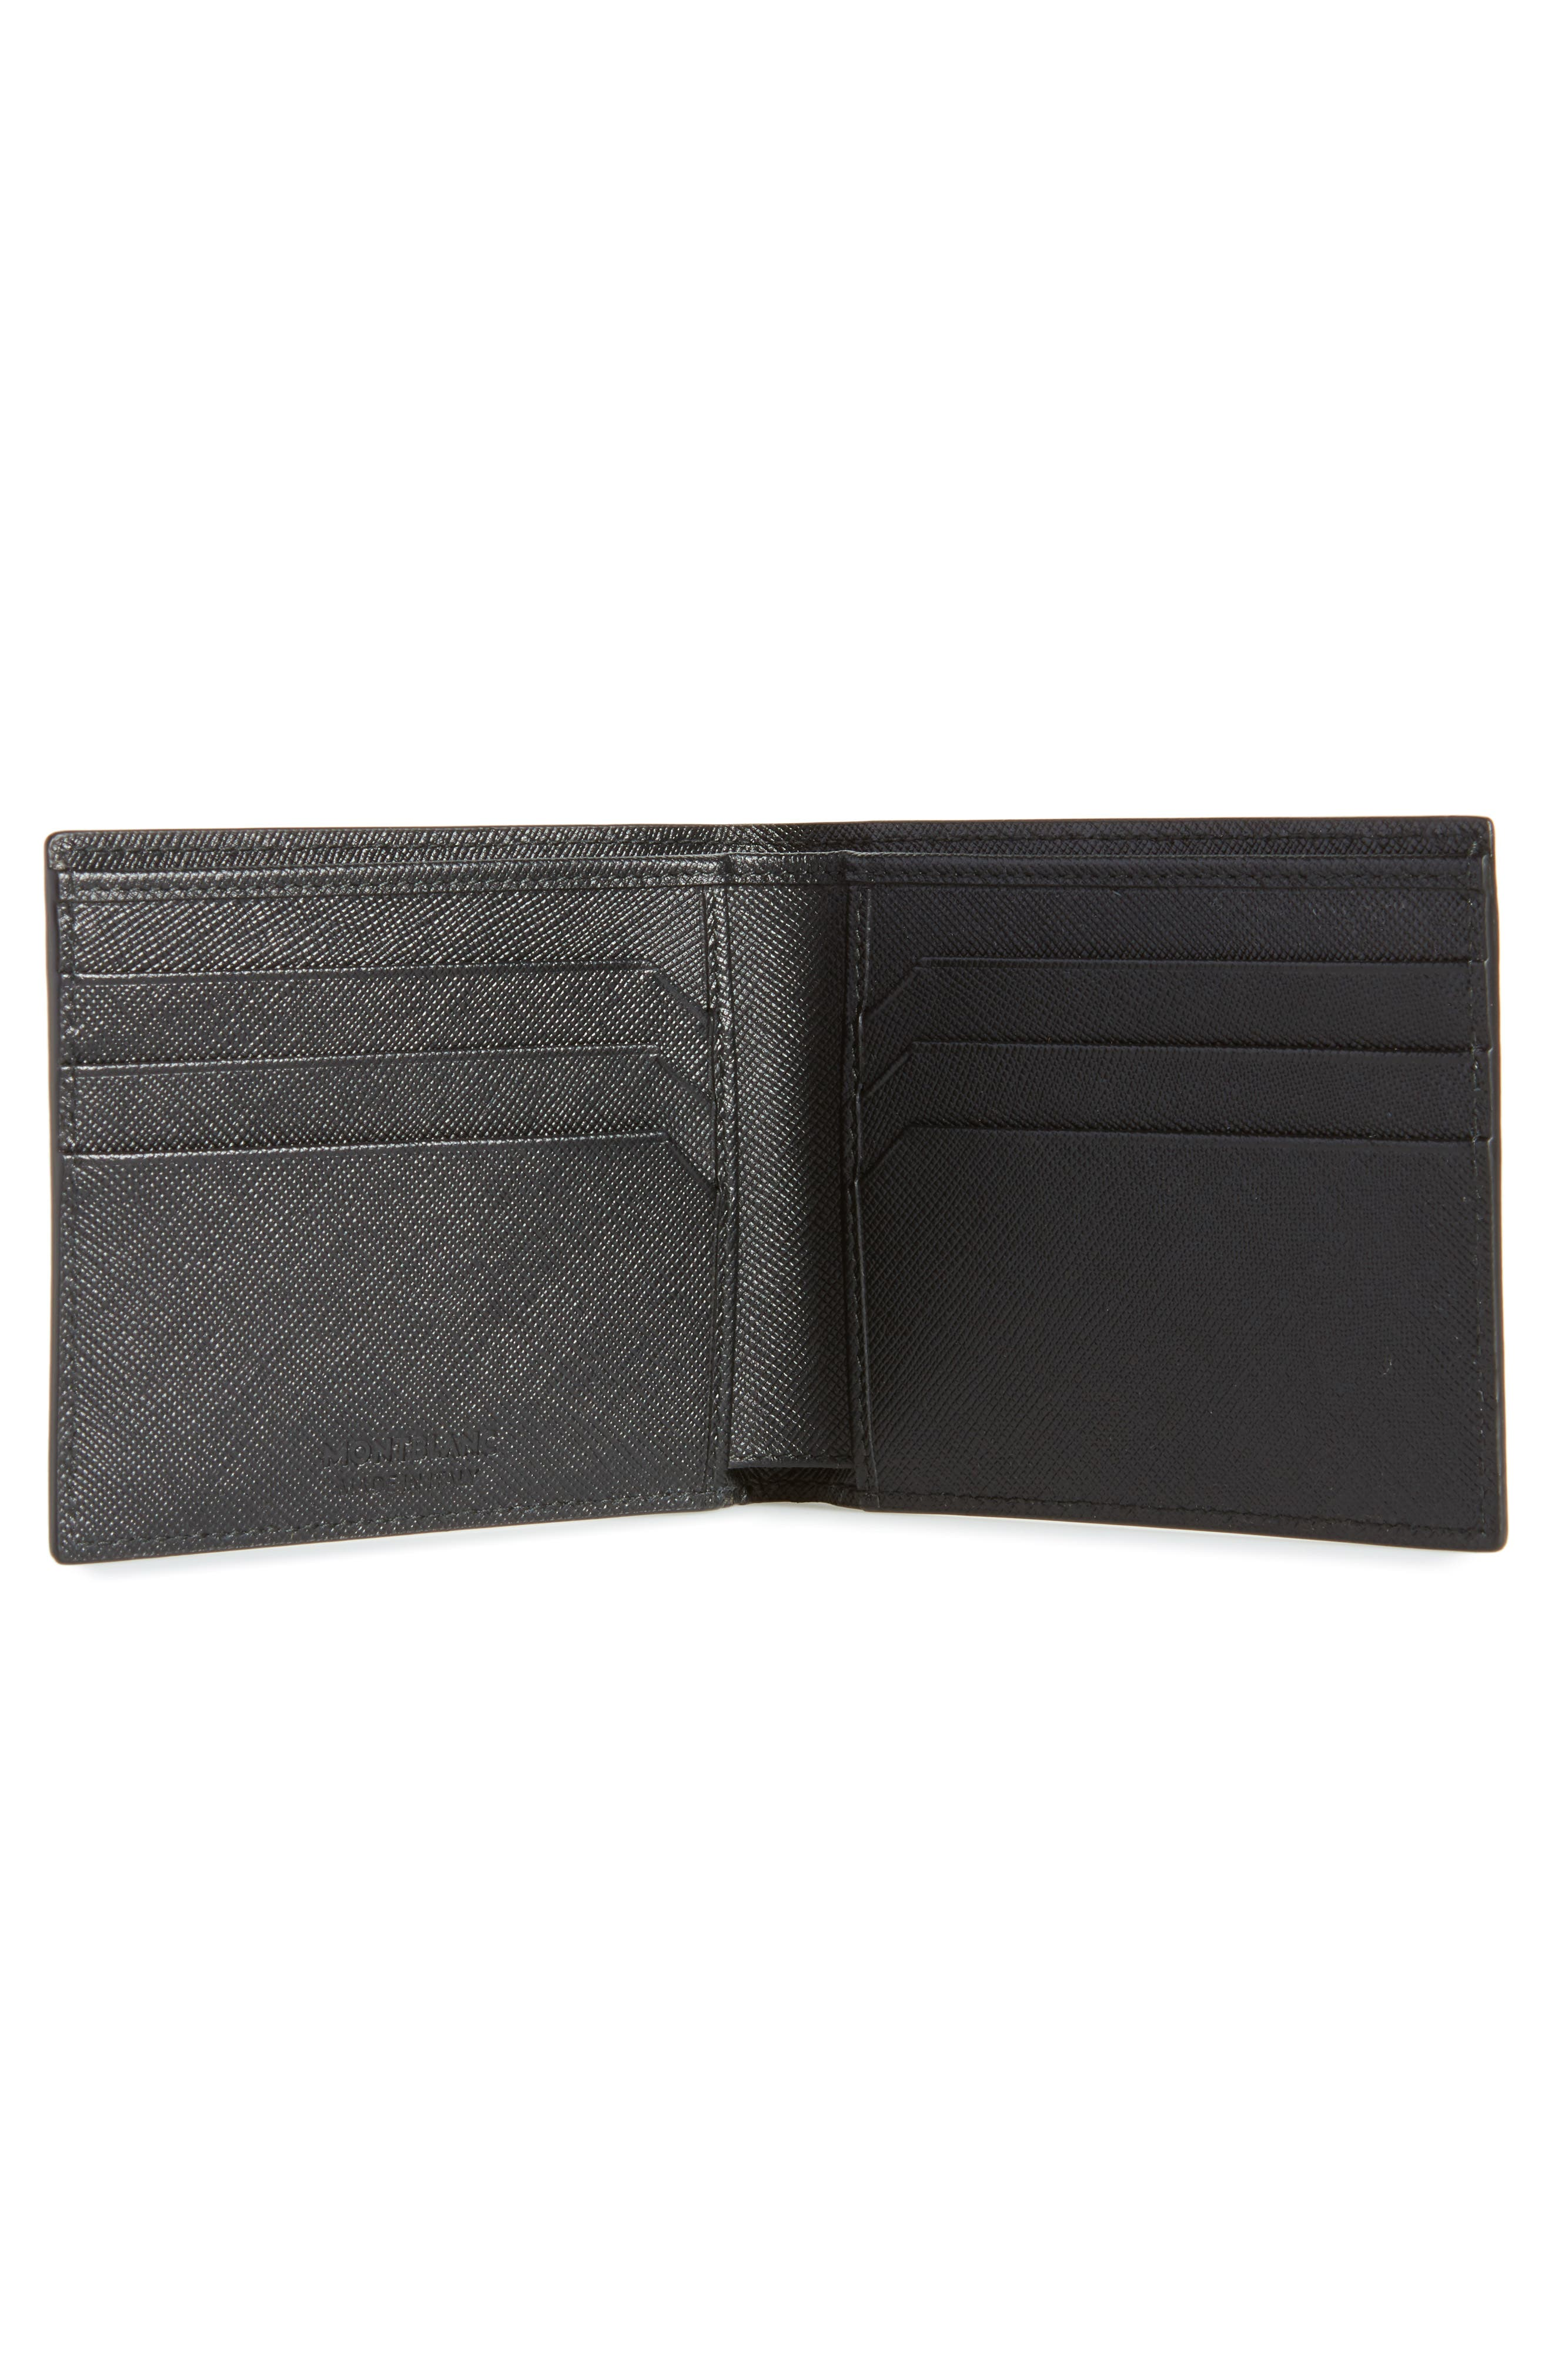 MONTBLANC, Sartorial Leather Bifold Wallet, Alternate thumbnail 2, color, BLACK